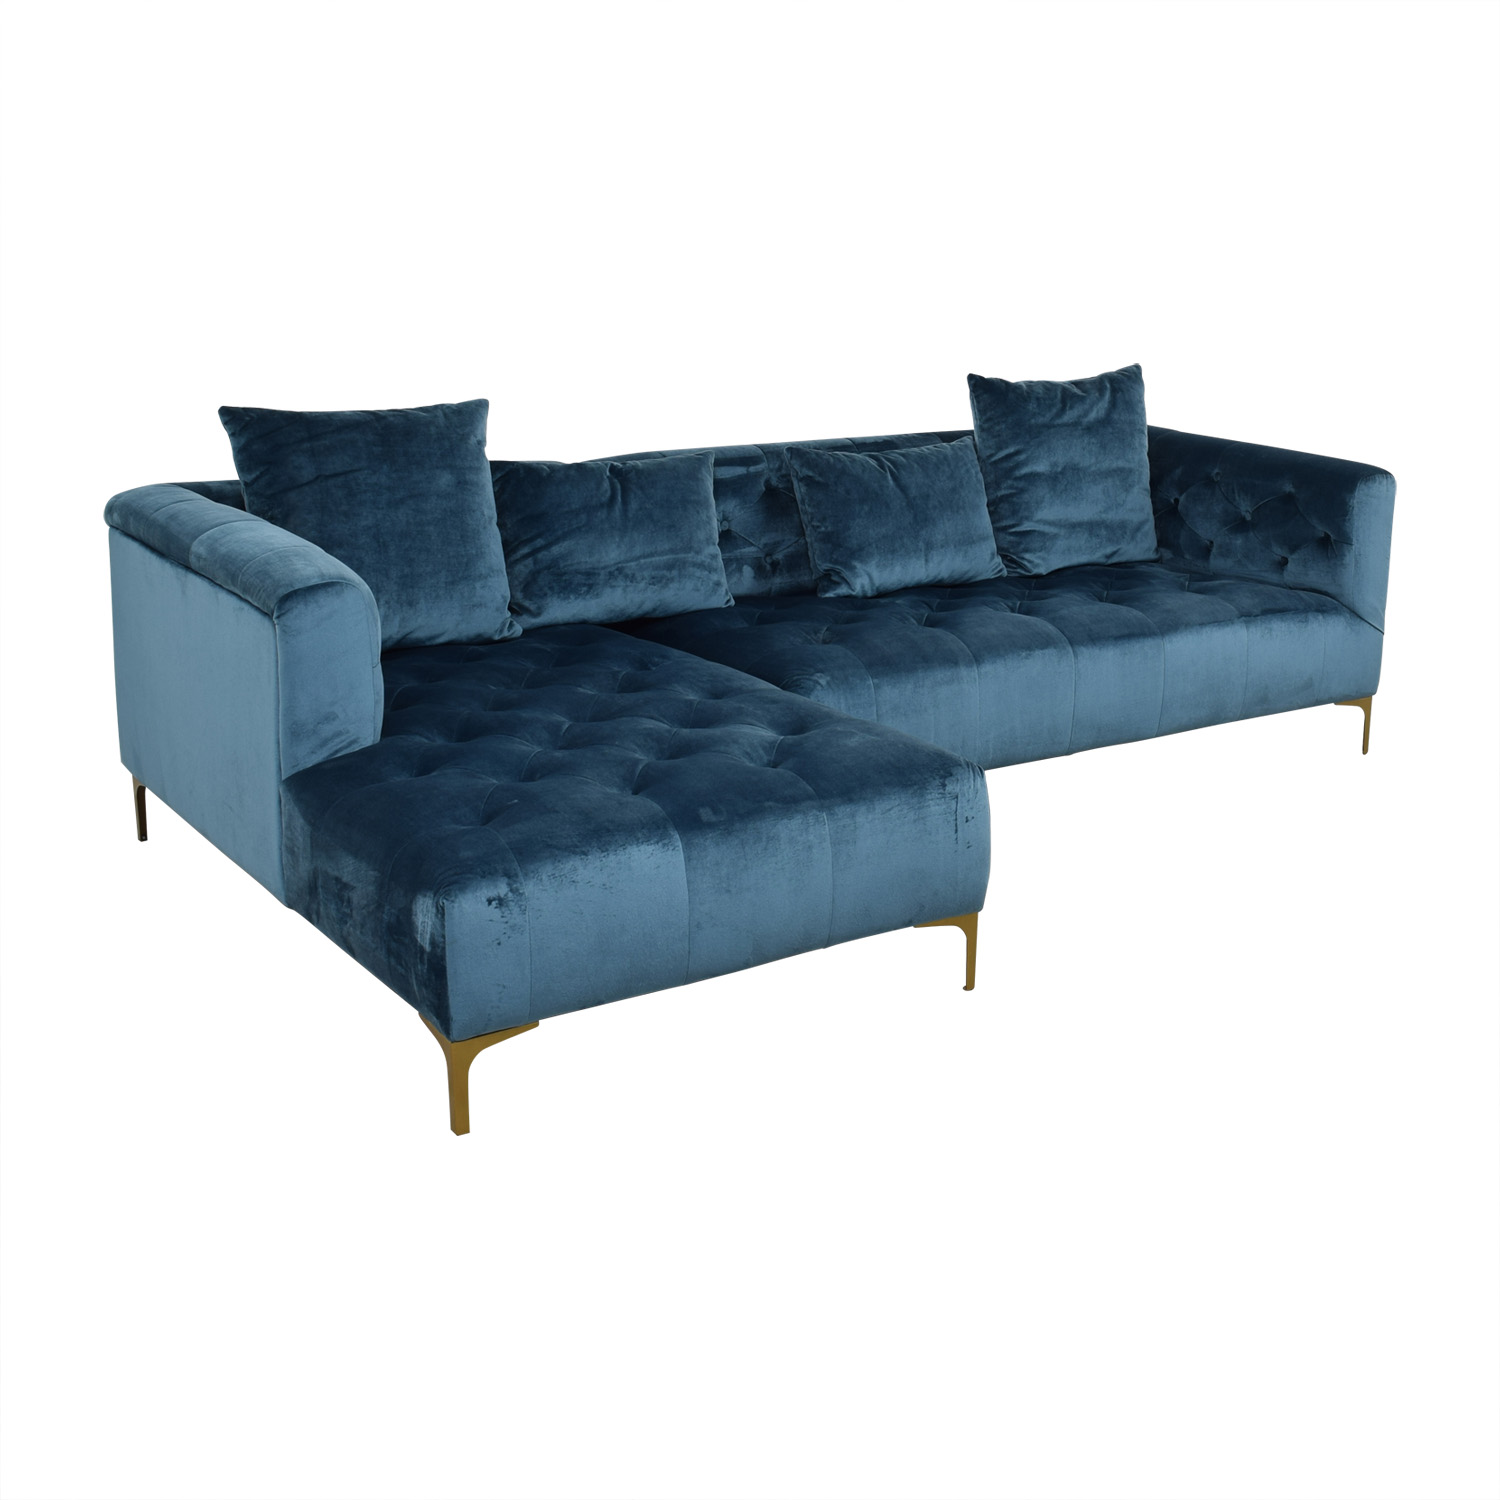 Ms. Chesterfield Ocean Blue Tufted Left Chaise Sectional Sofas